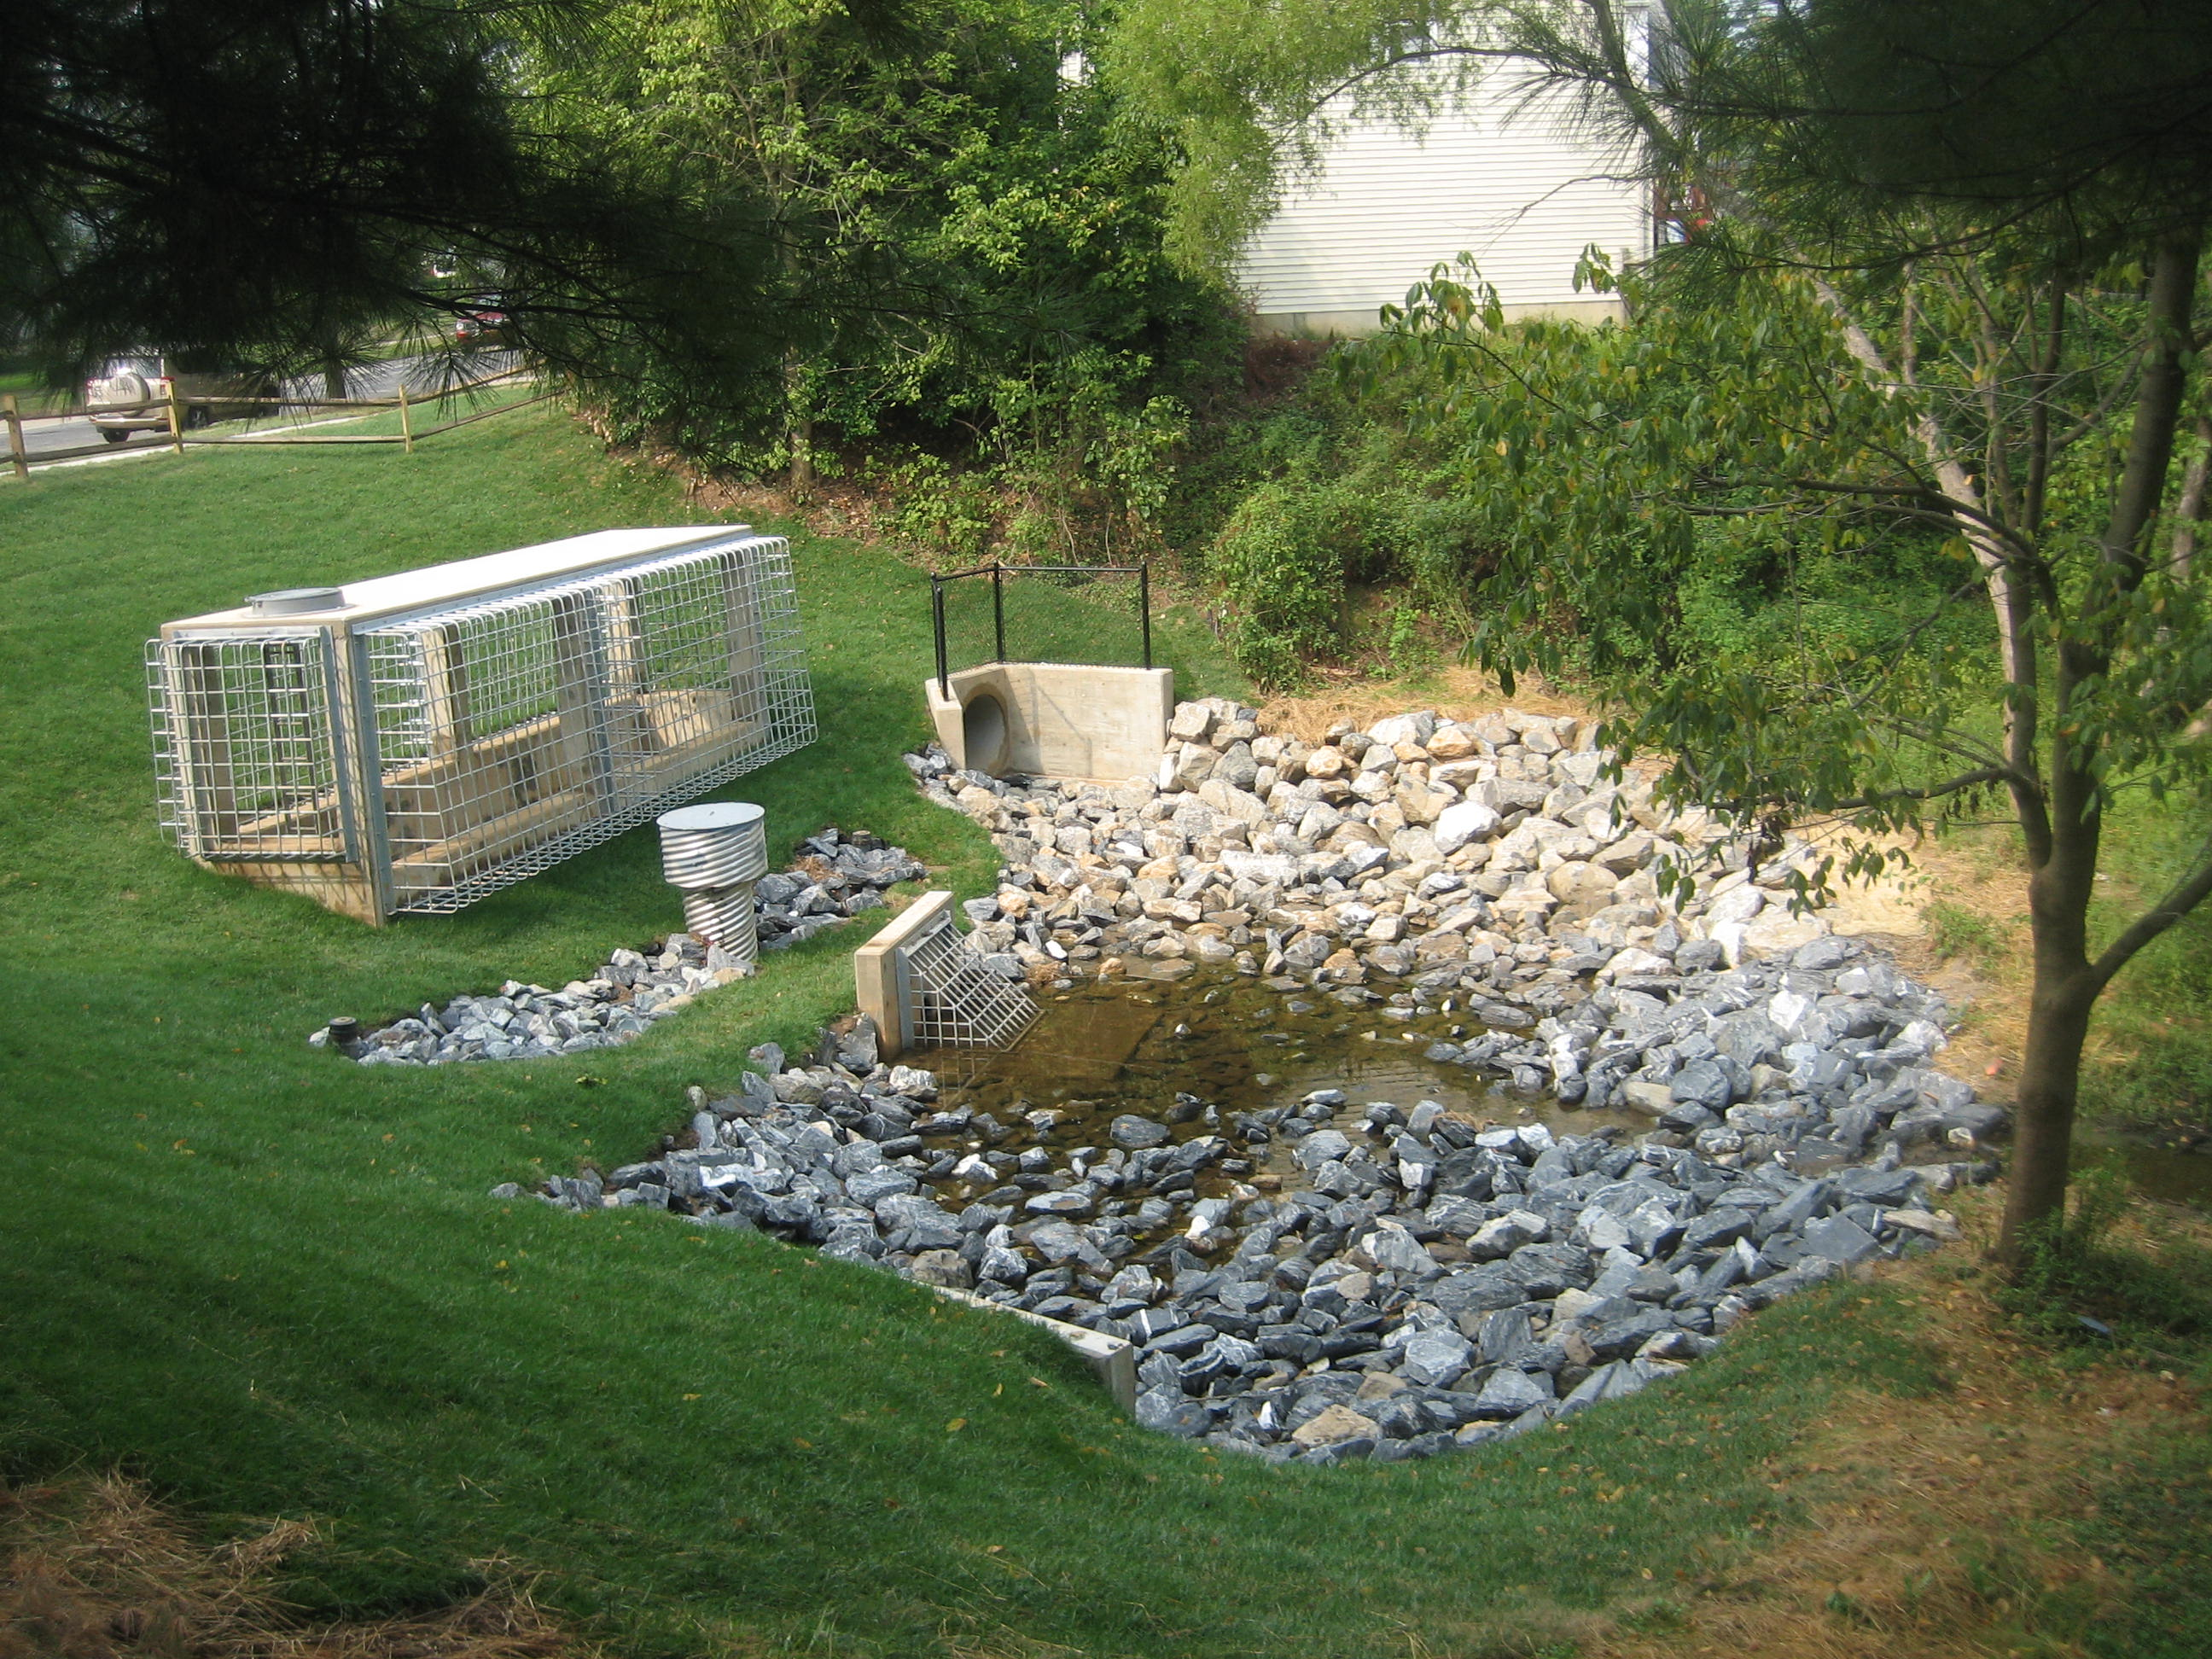 Ponds department of environmental protection montgomery county md - Repaired The Chadswood Regional Stormwater Management Pond